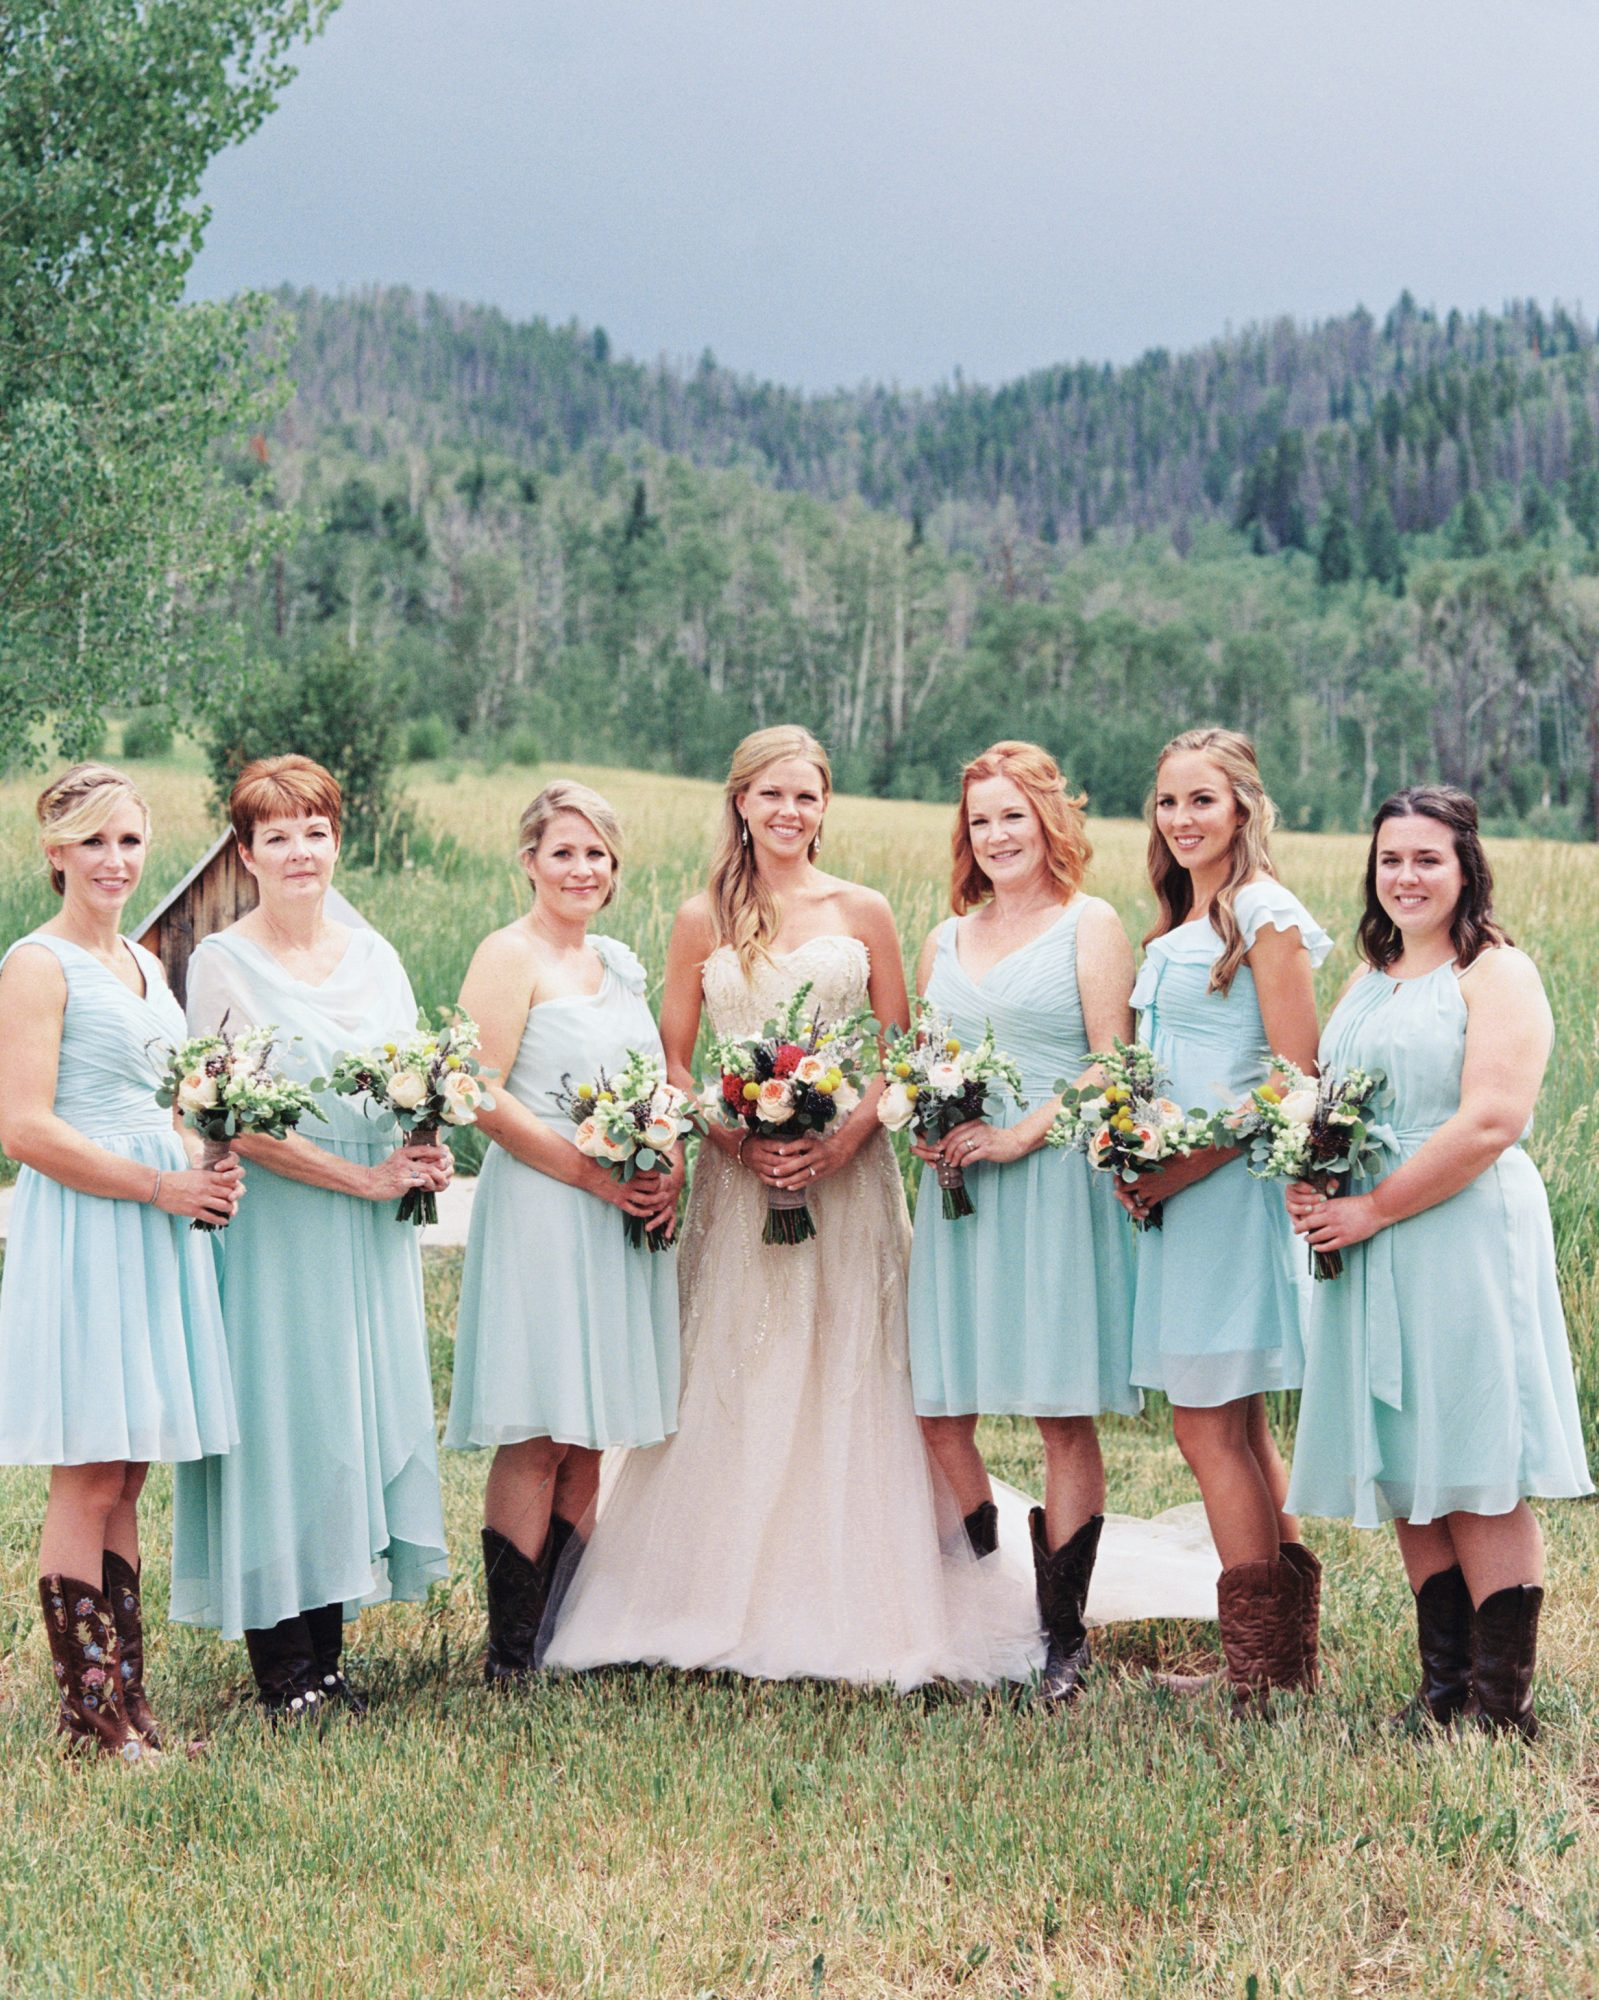 erin-jj-wedding-bridesmaids-35-s111742-0115.jpg